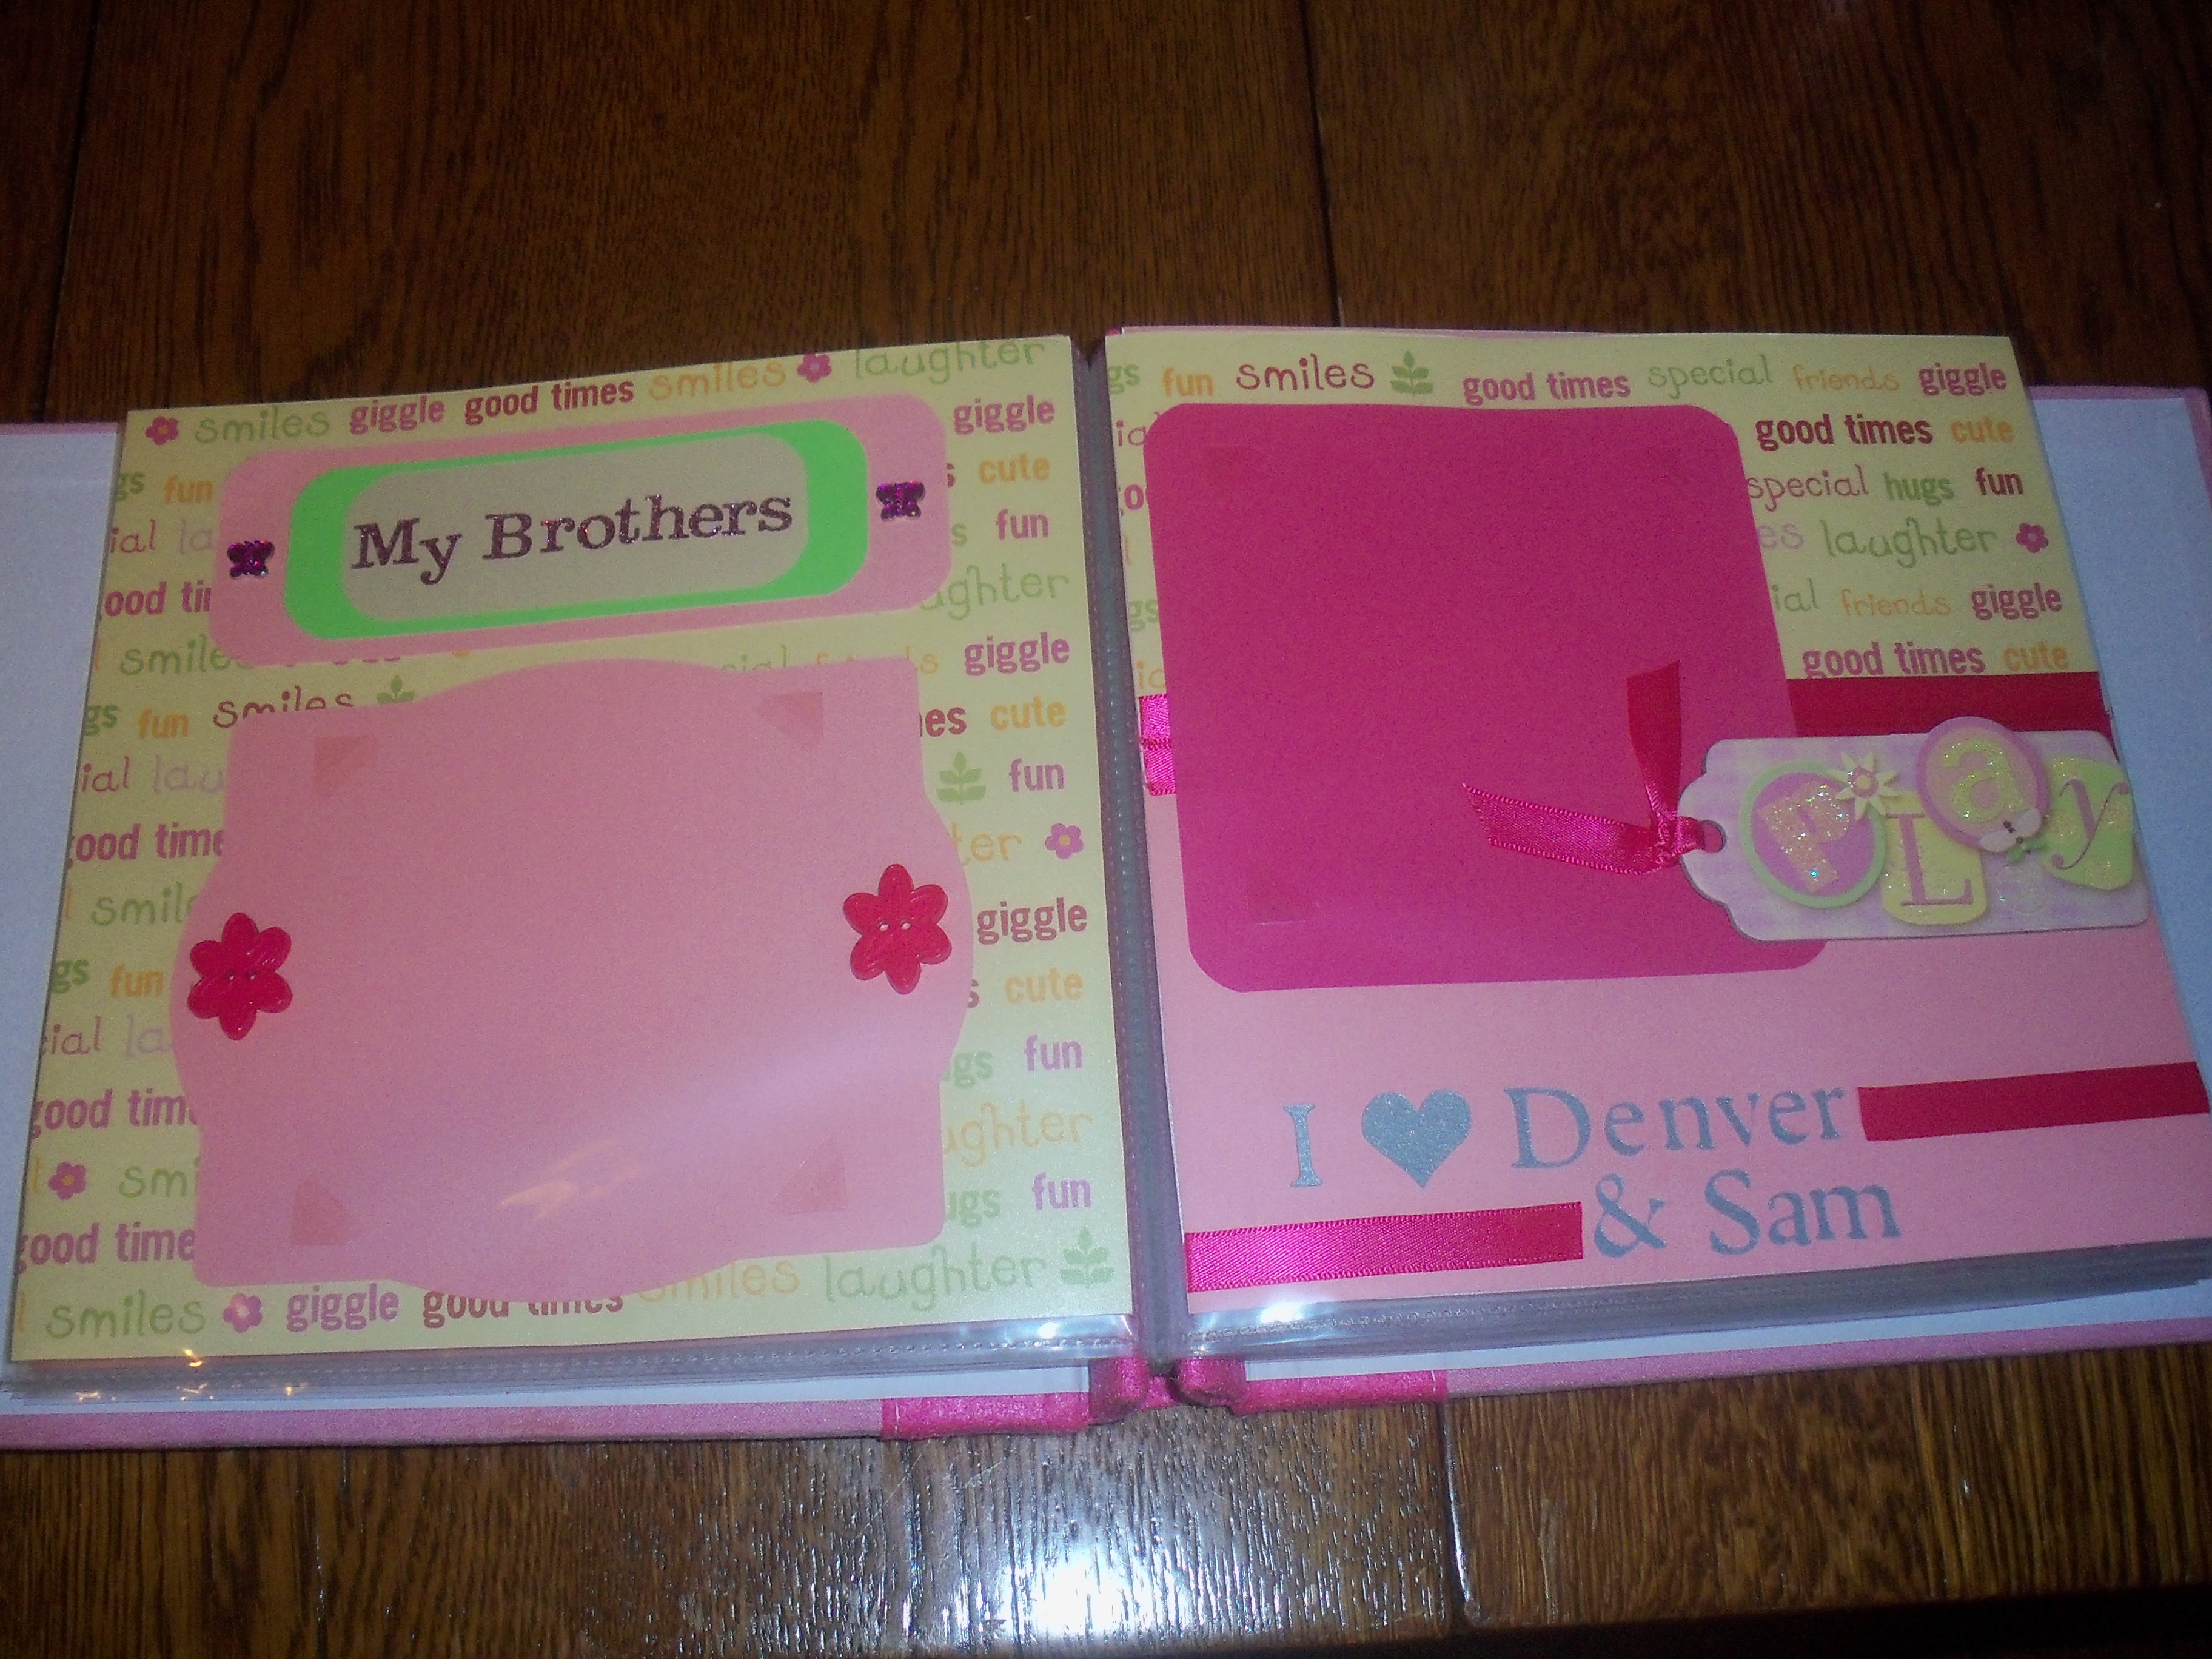 Scrapbook ideas for baby girl - Since The Scrapbook Was A Gift I Also Made A Personalized Card To Go With It